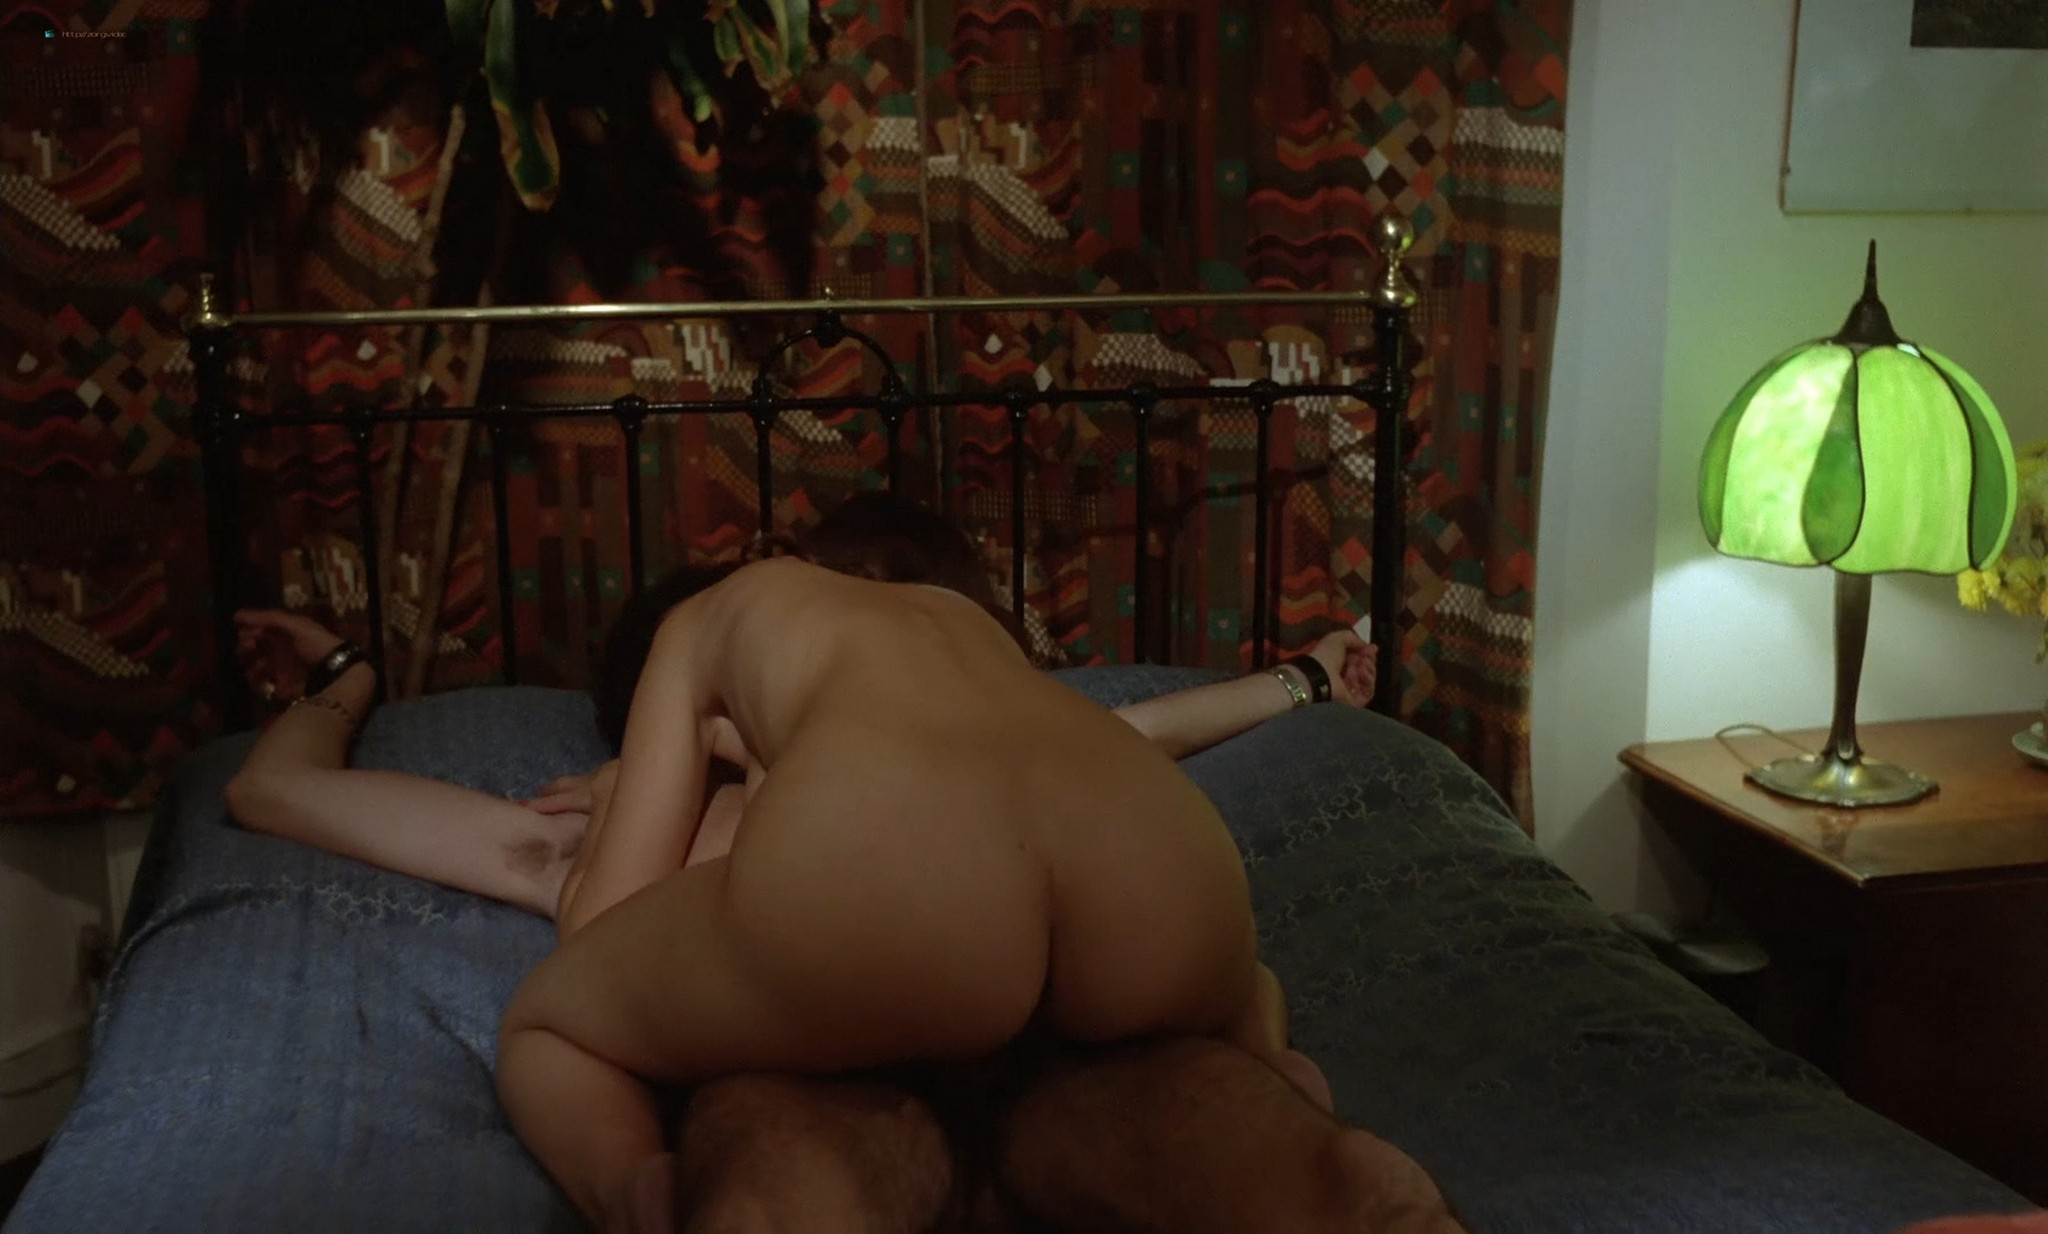 Mary Millington nude sex Rosemary England and others nude - Confessions from the David Galaxy Affair (1979) HD 1080p BluRay (3)